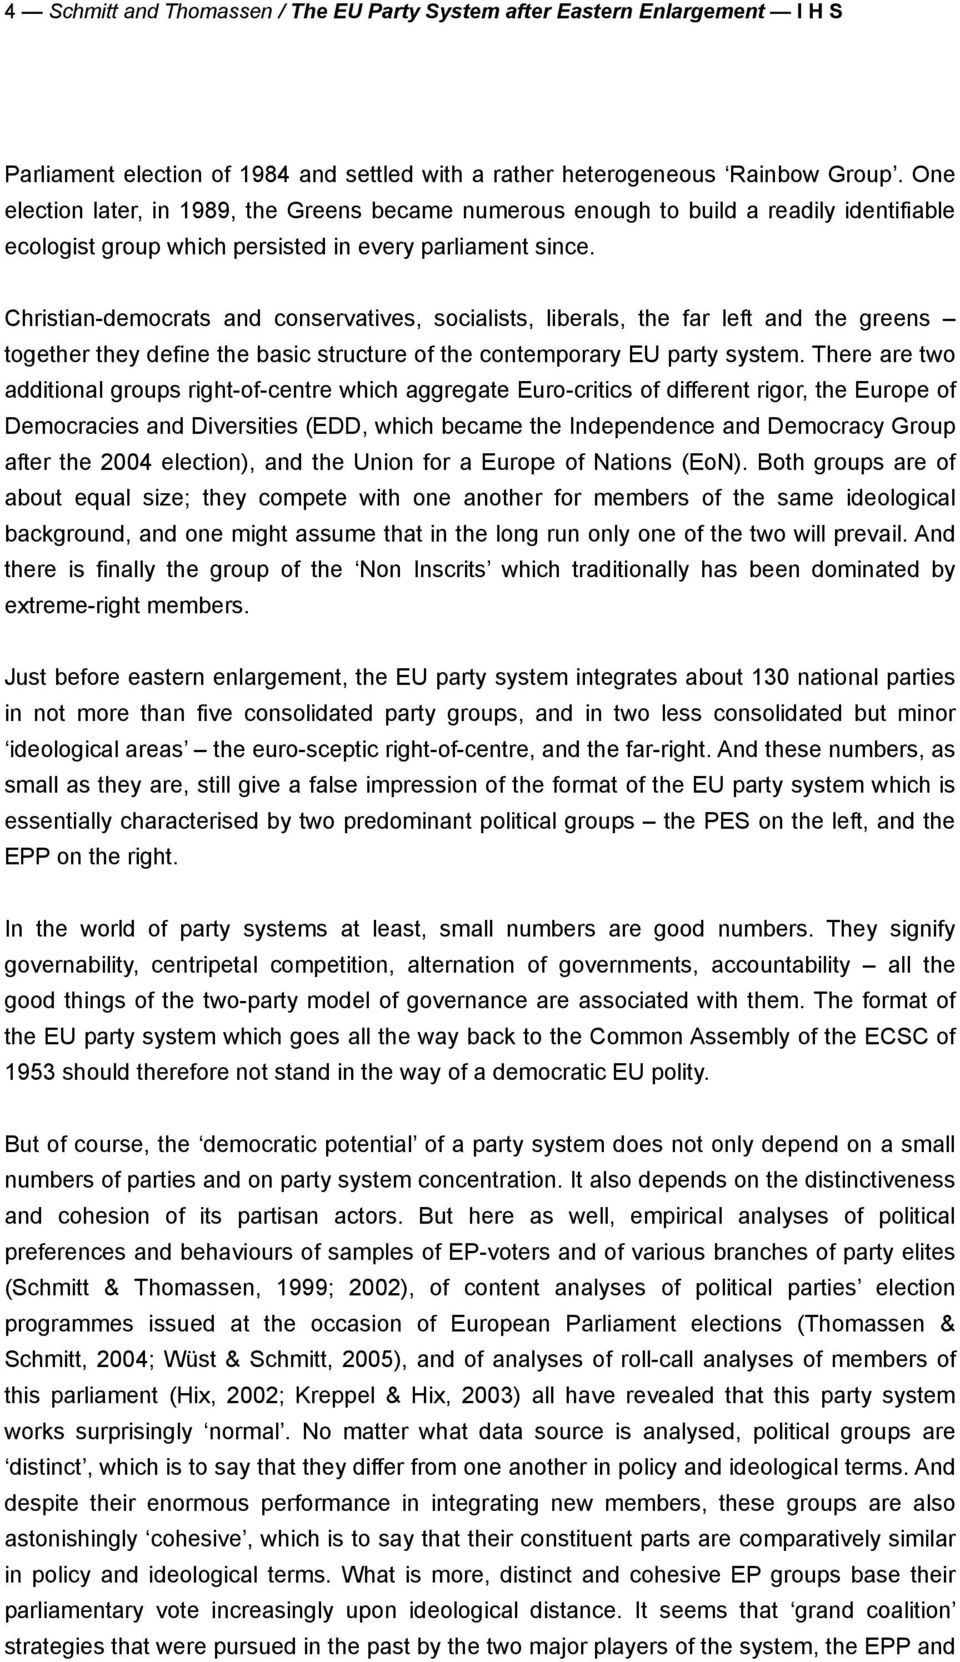 Christian-democrats and conservatives, socialists, liberals, the far left and the greens together they define the basic structure of the contemporary EU party system.